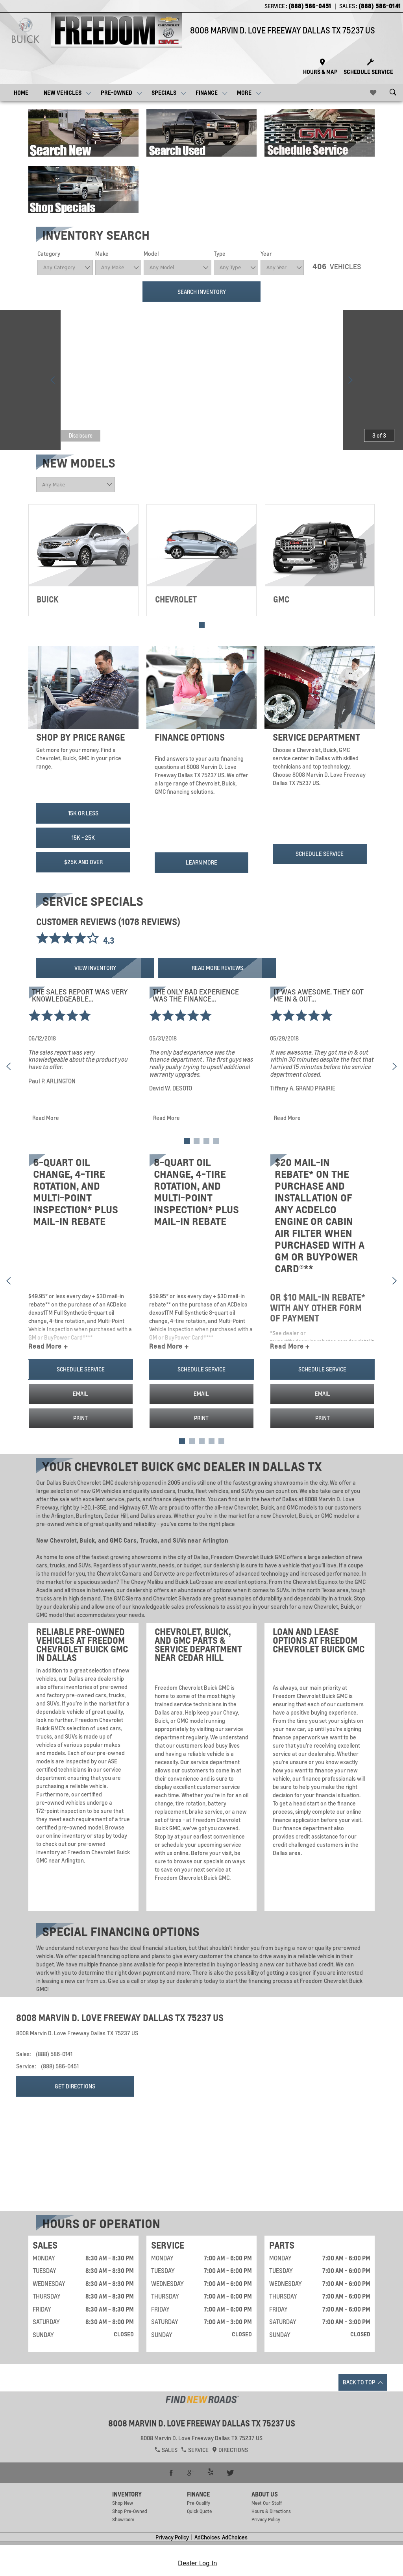 Freedomchevydallas Competitors, Revenue and Employees